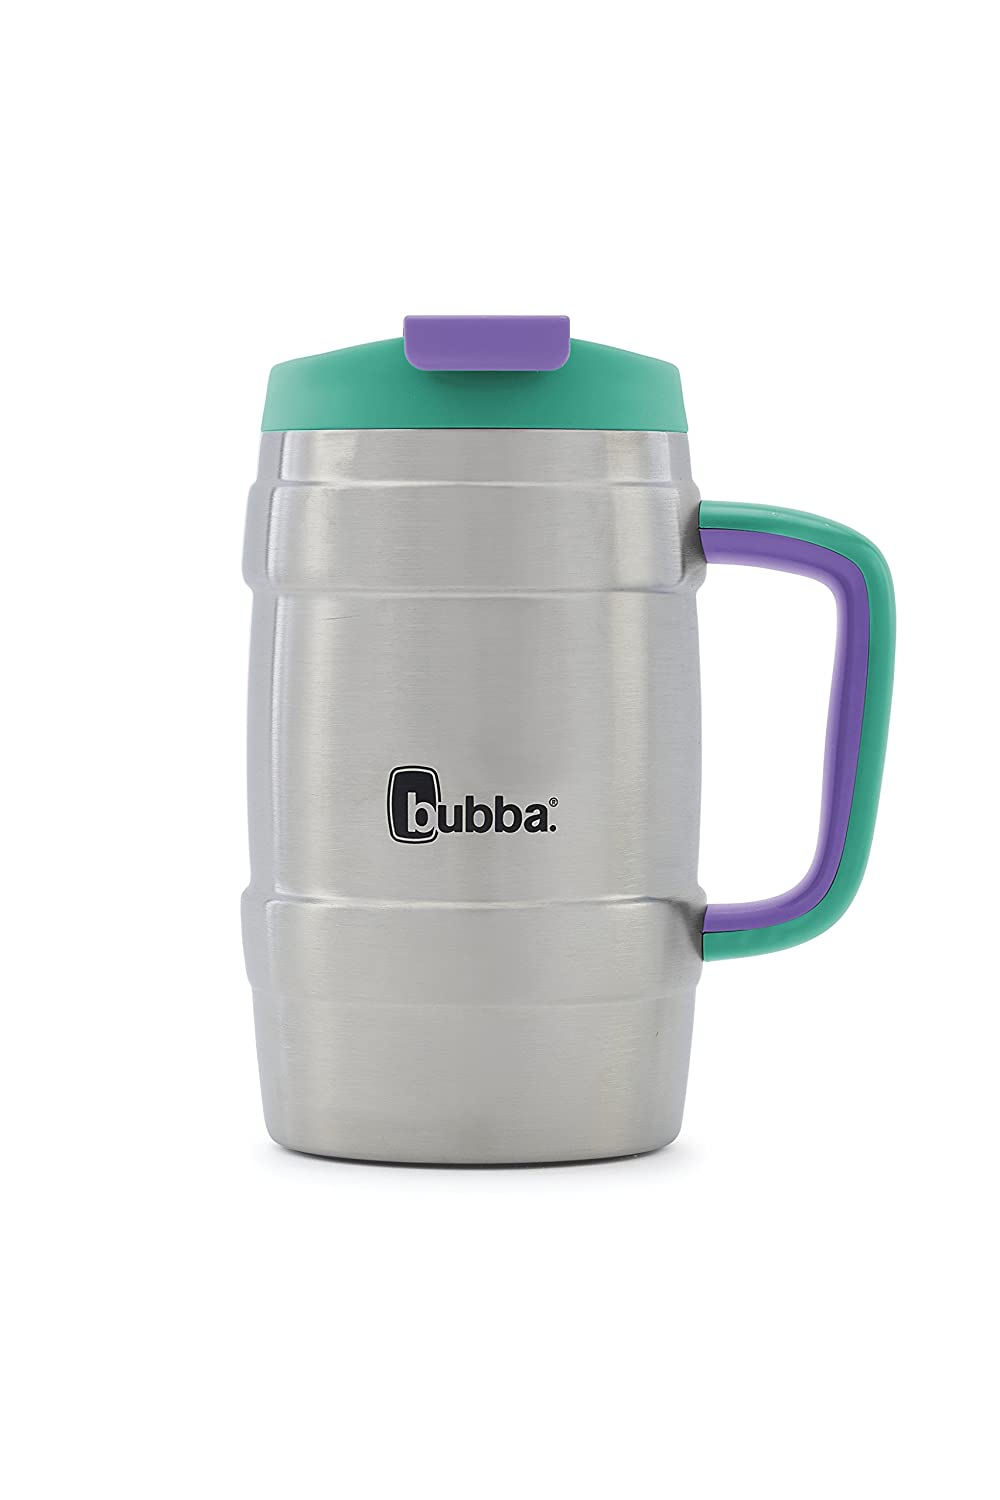 Bubba Keg Vacuum-Insulated Stainless Steel Travel Mug, 34 oz, Rock Candy